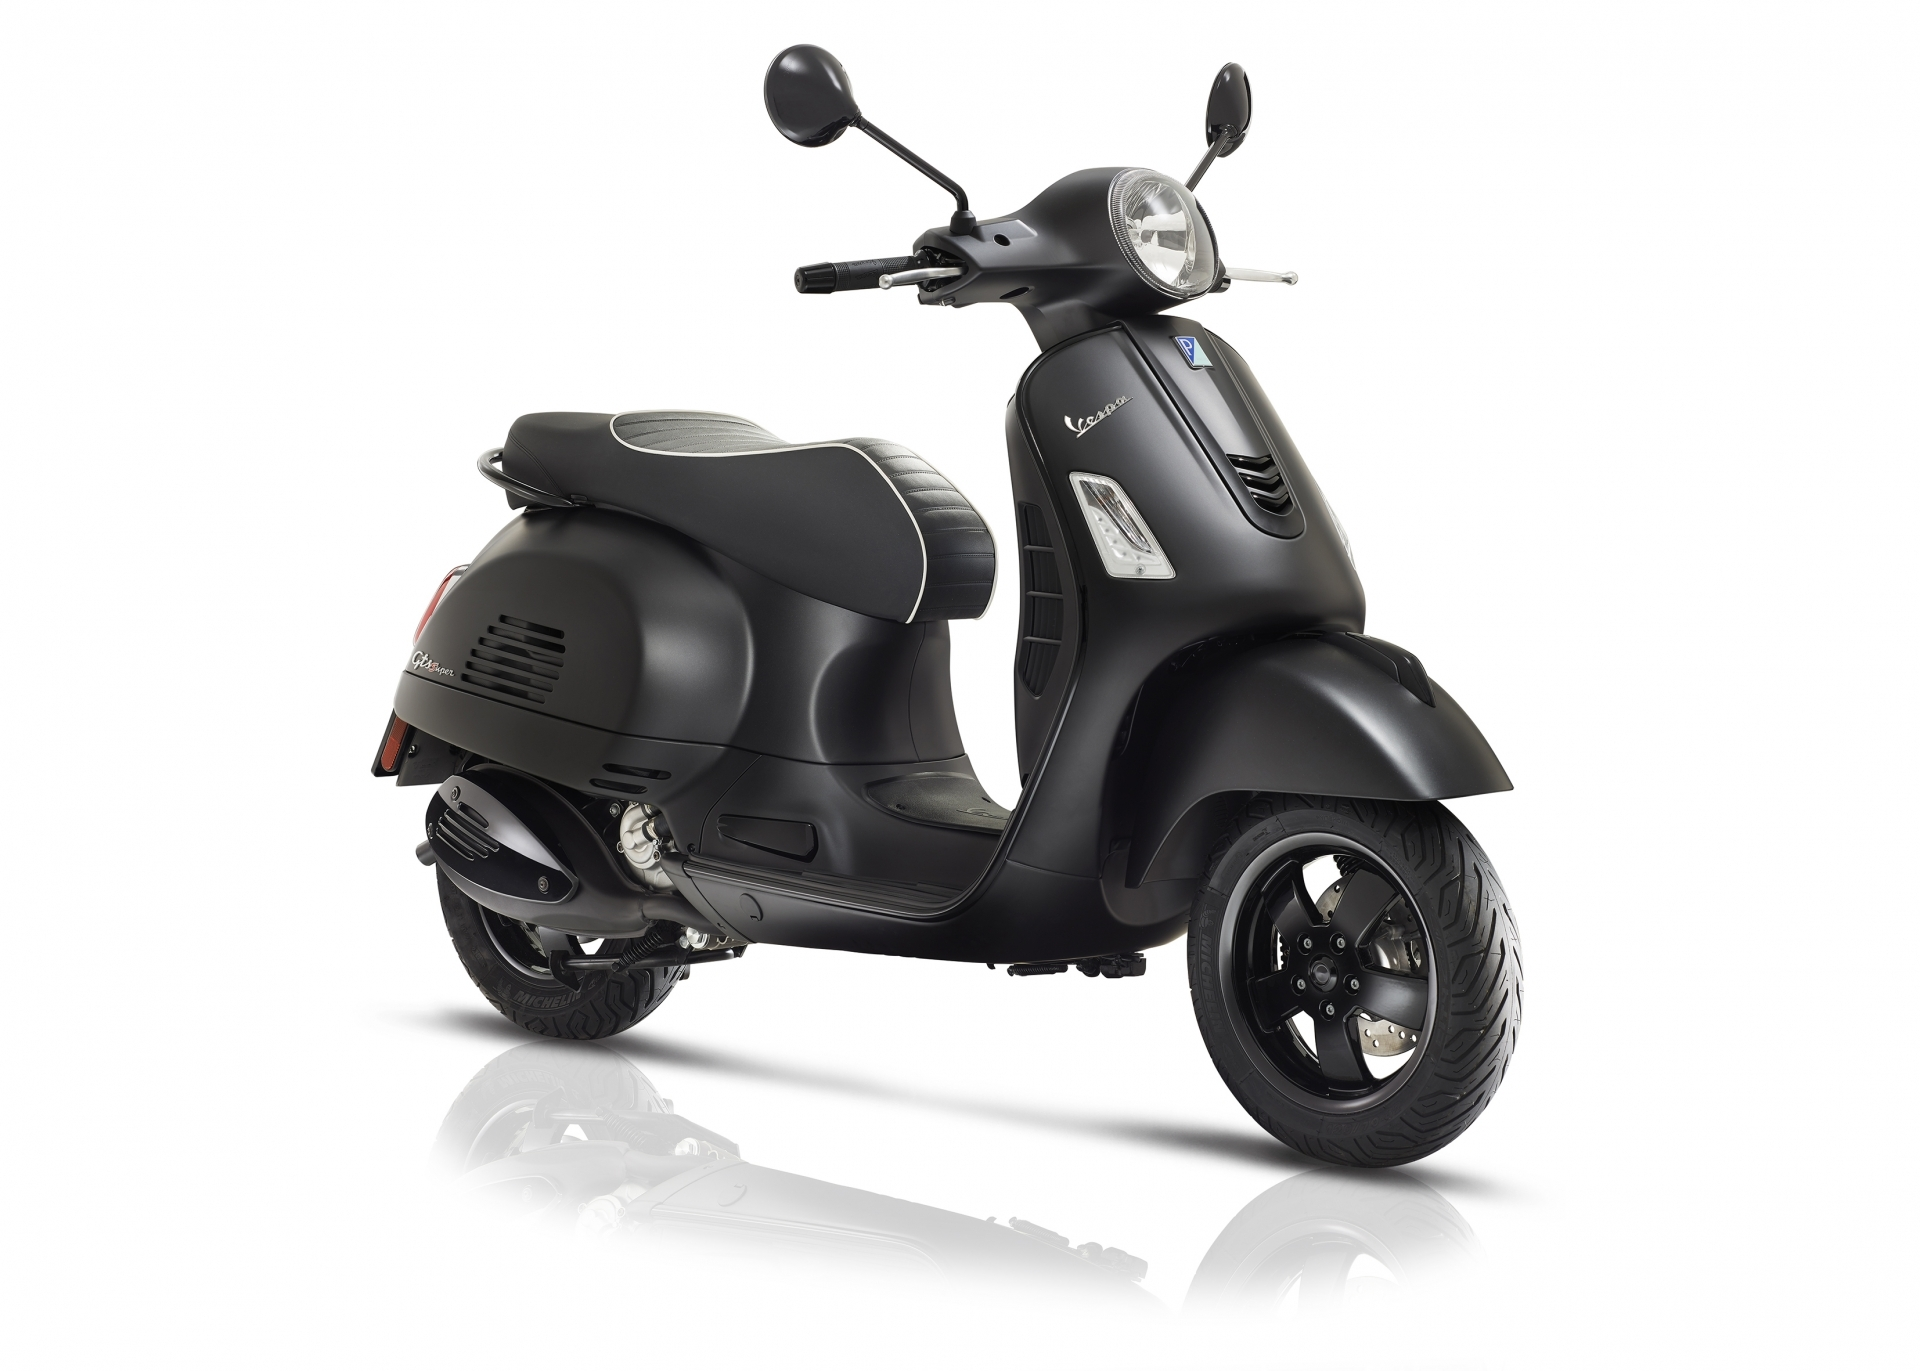 Vespa-GTS-Super-Notte-model-2018-new-nieuw-piaggio-tensen-tweewielers-2018-matt-black-sportief-snel-motorscooter-akrapovic-drpulley-jcosta-scooterwinkel-naaldwijk-delft-rijswijk-rotterdam-leiden